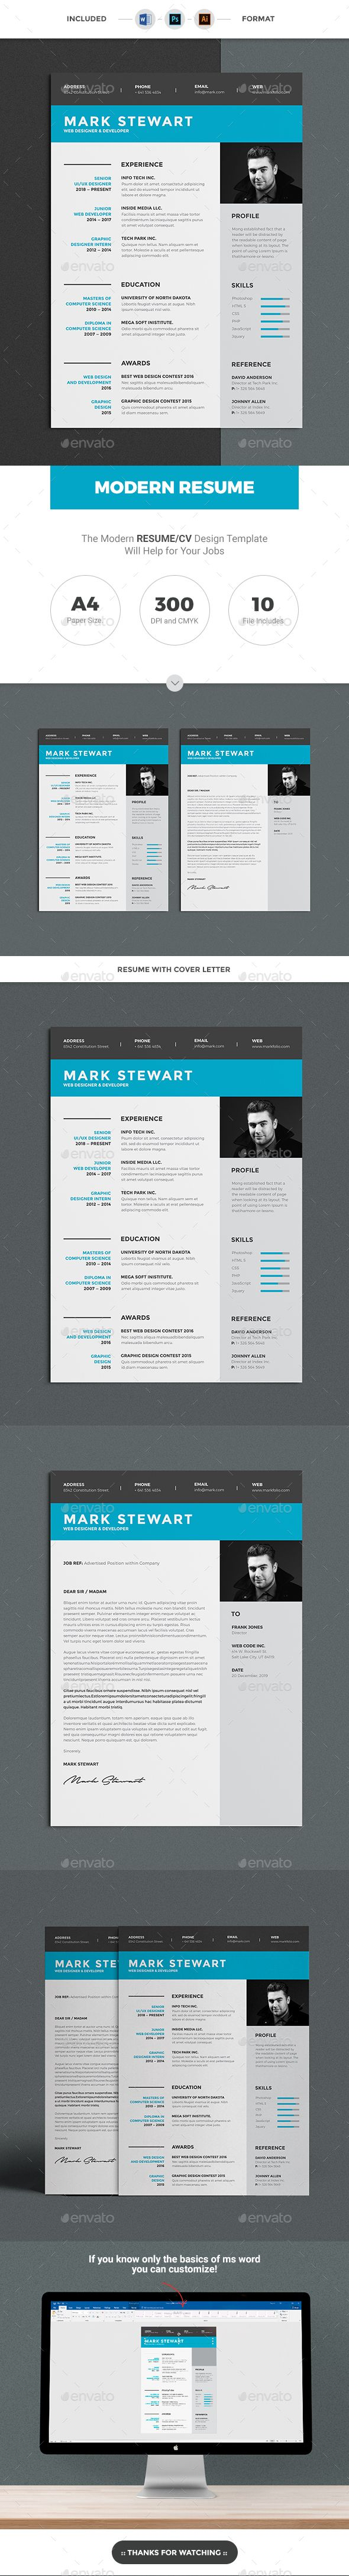 #Resume Word Template / CV Template with super clean and modern look. Clean Resume Template page designs are easy to use and customize, so you can quickly tailor-make your job resume for any opportunity and help you to get your job. This Infographic Resume CV Template is made in Adobe Photoshop, Illustrator format and very popular word processor, MS Word aka Microsoft Word.